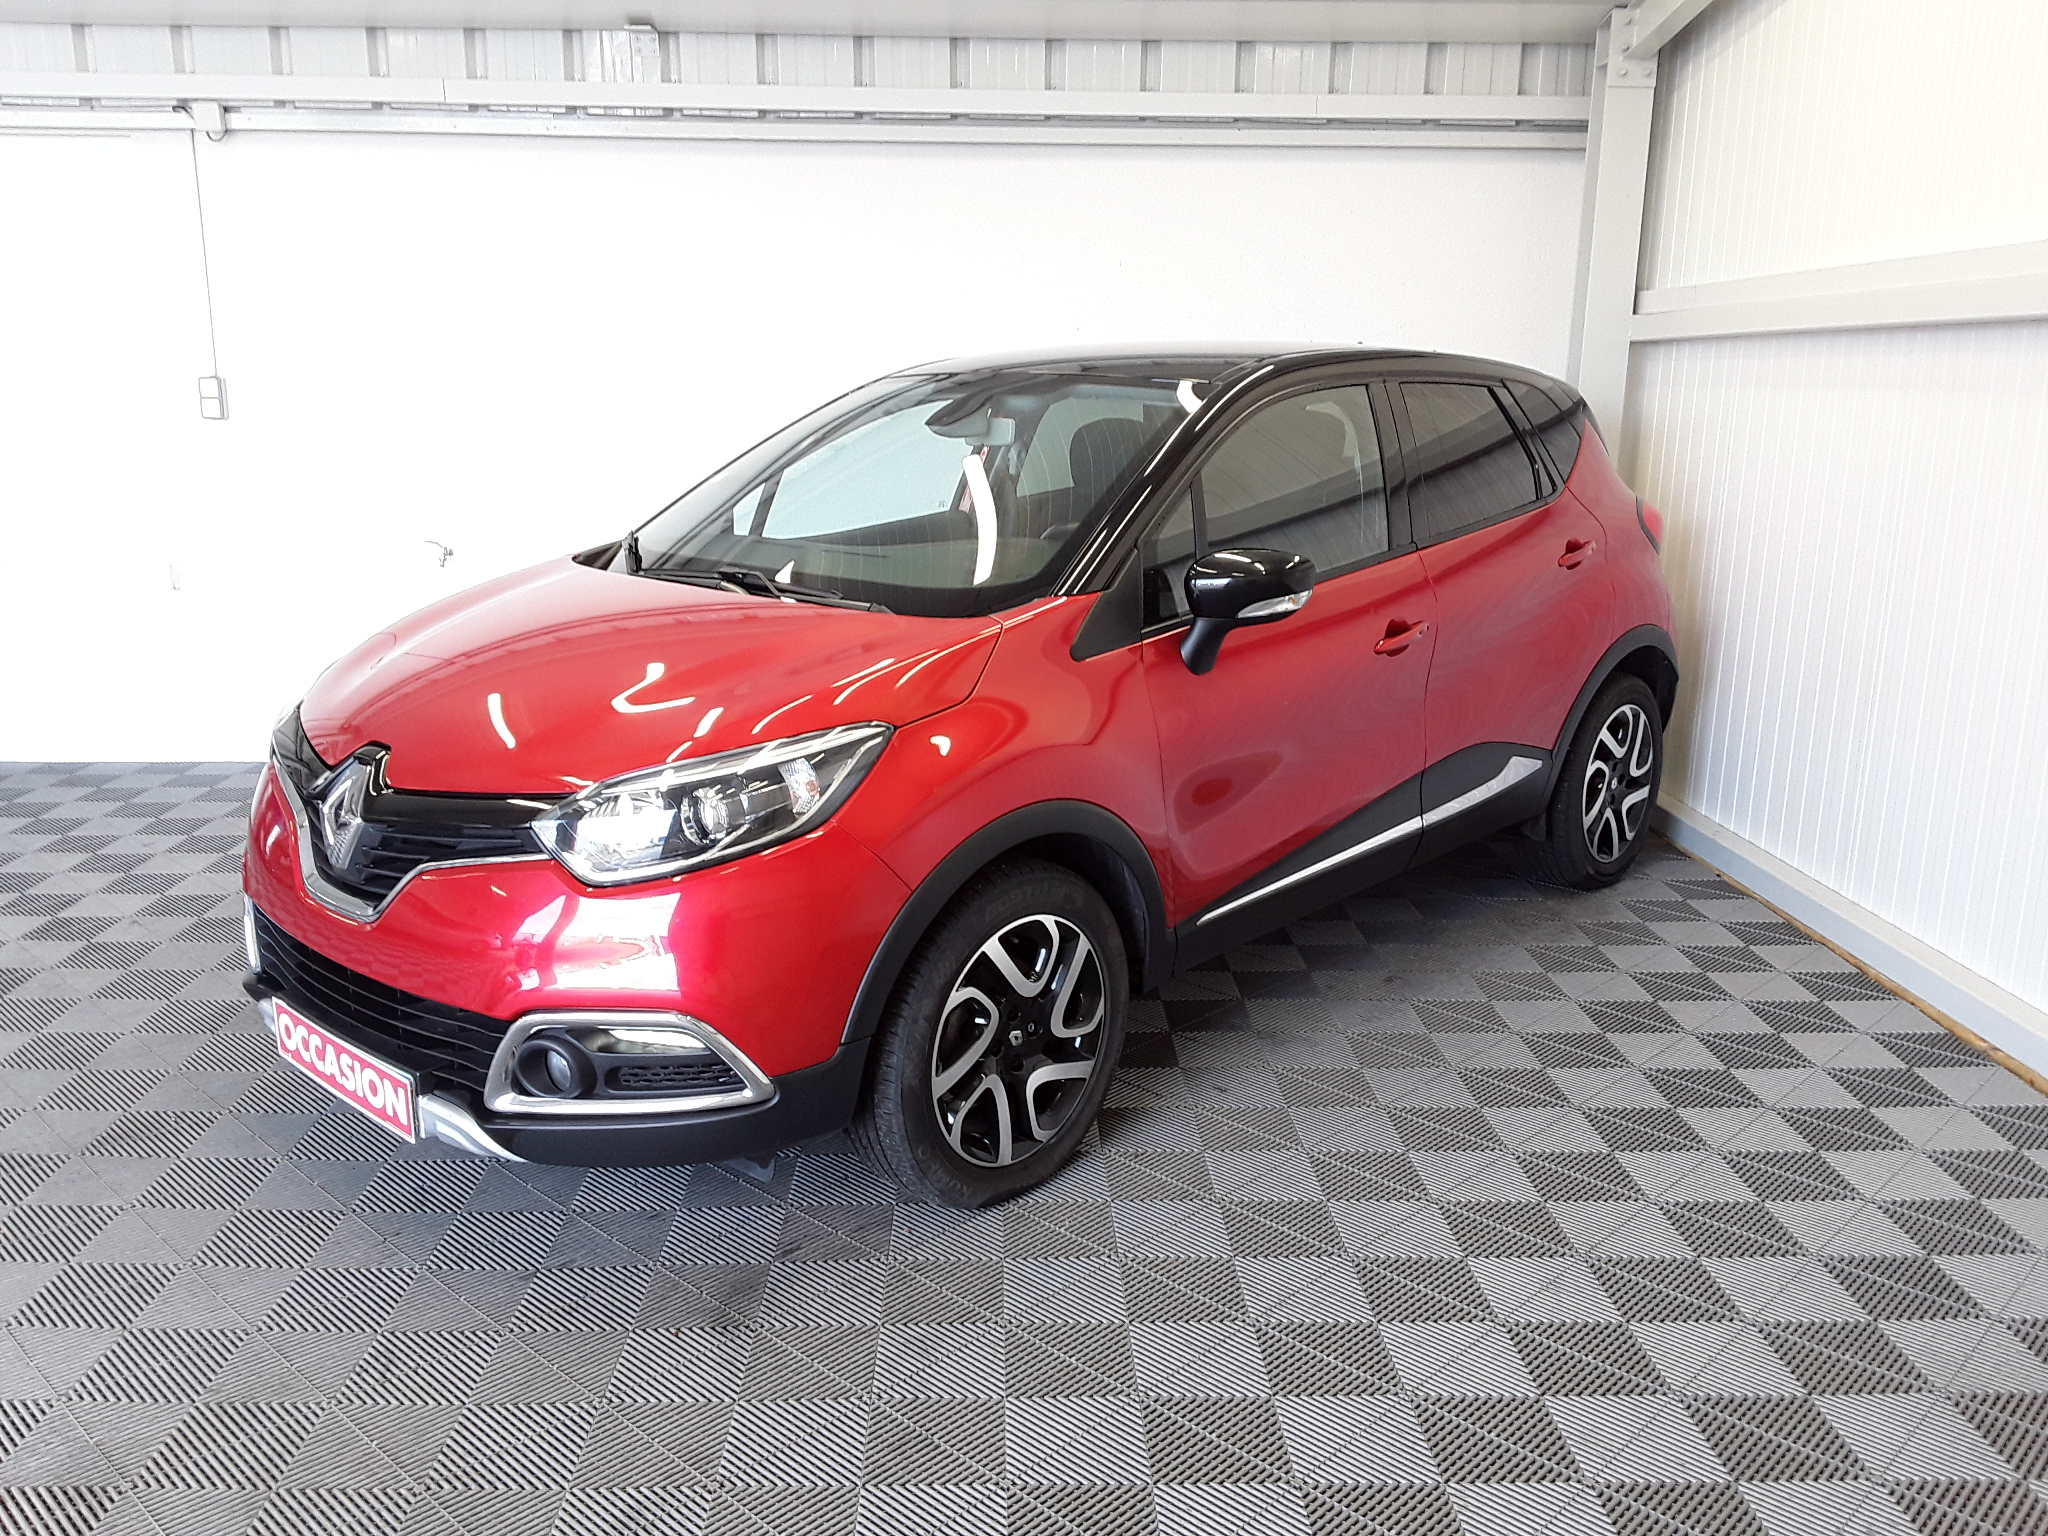 RENAULT CAPTUR BUSINESS dCi 90 Energy eco² Intens - 5P d'occasion